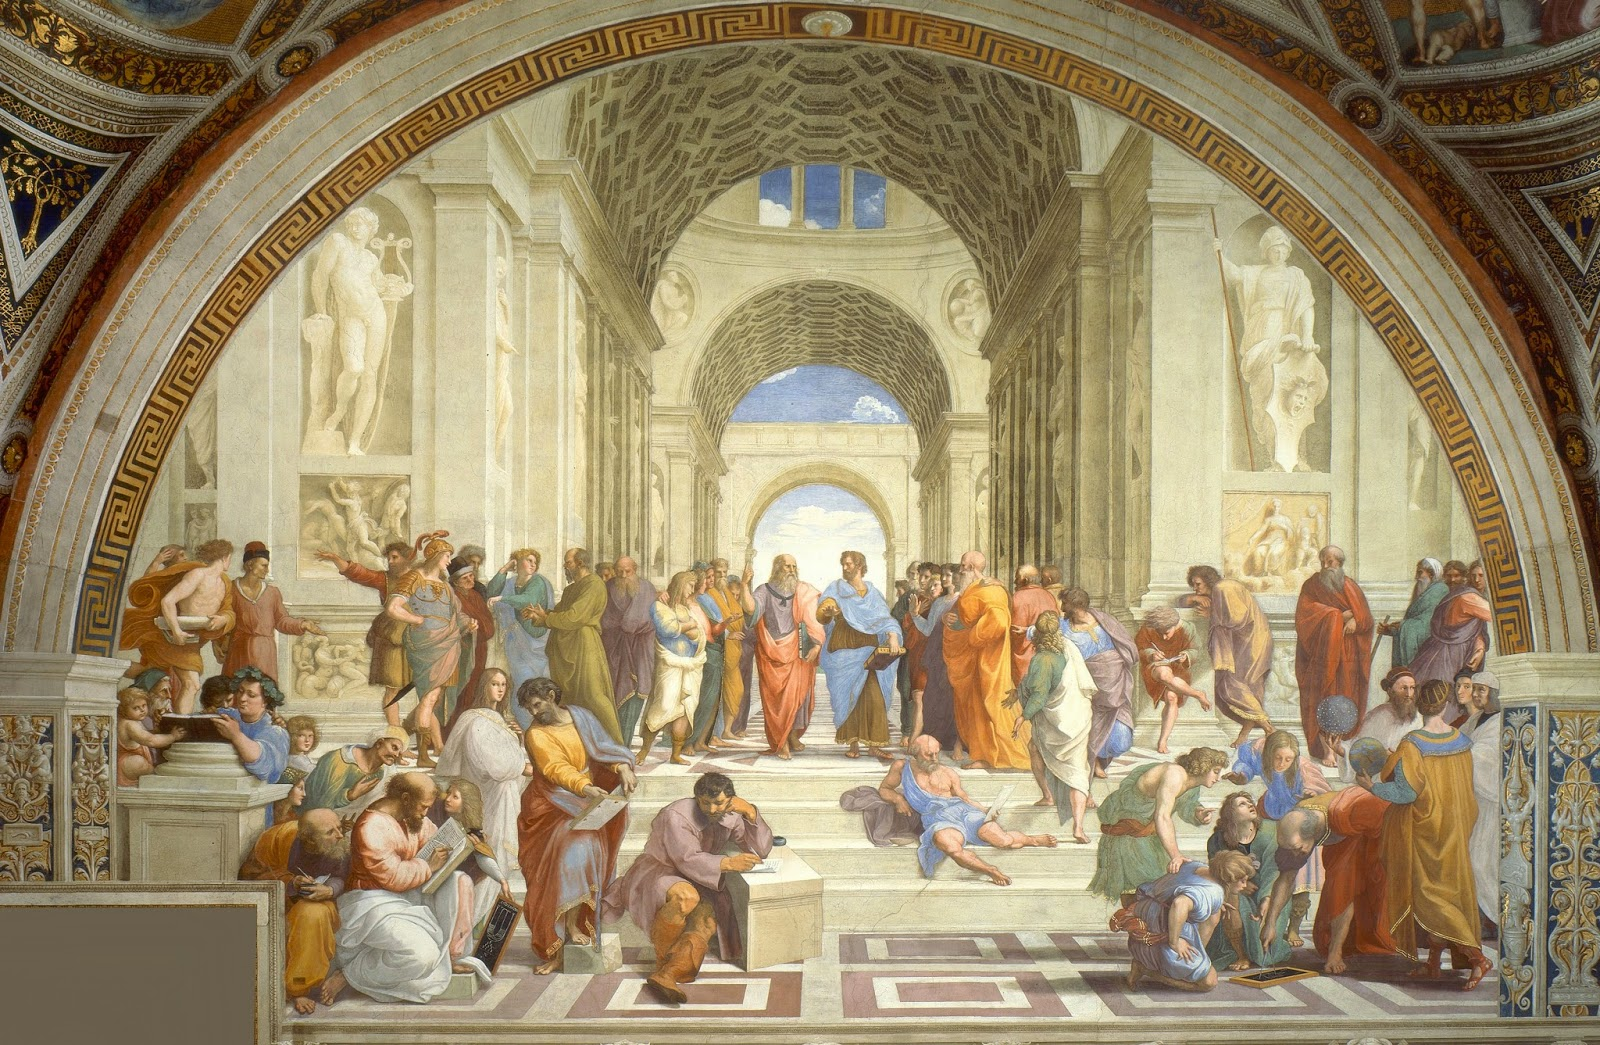 Raphael's School of Athens - The Key To Happiness, According To 3 Greek Philosophers